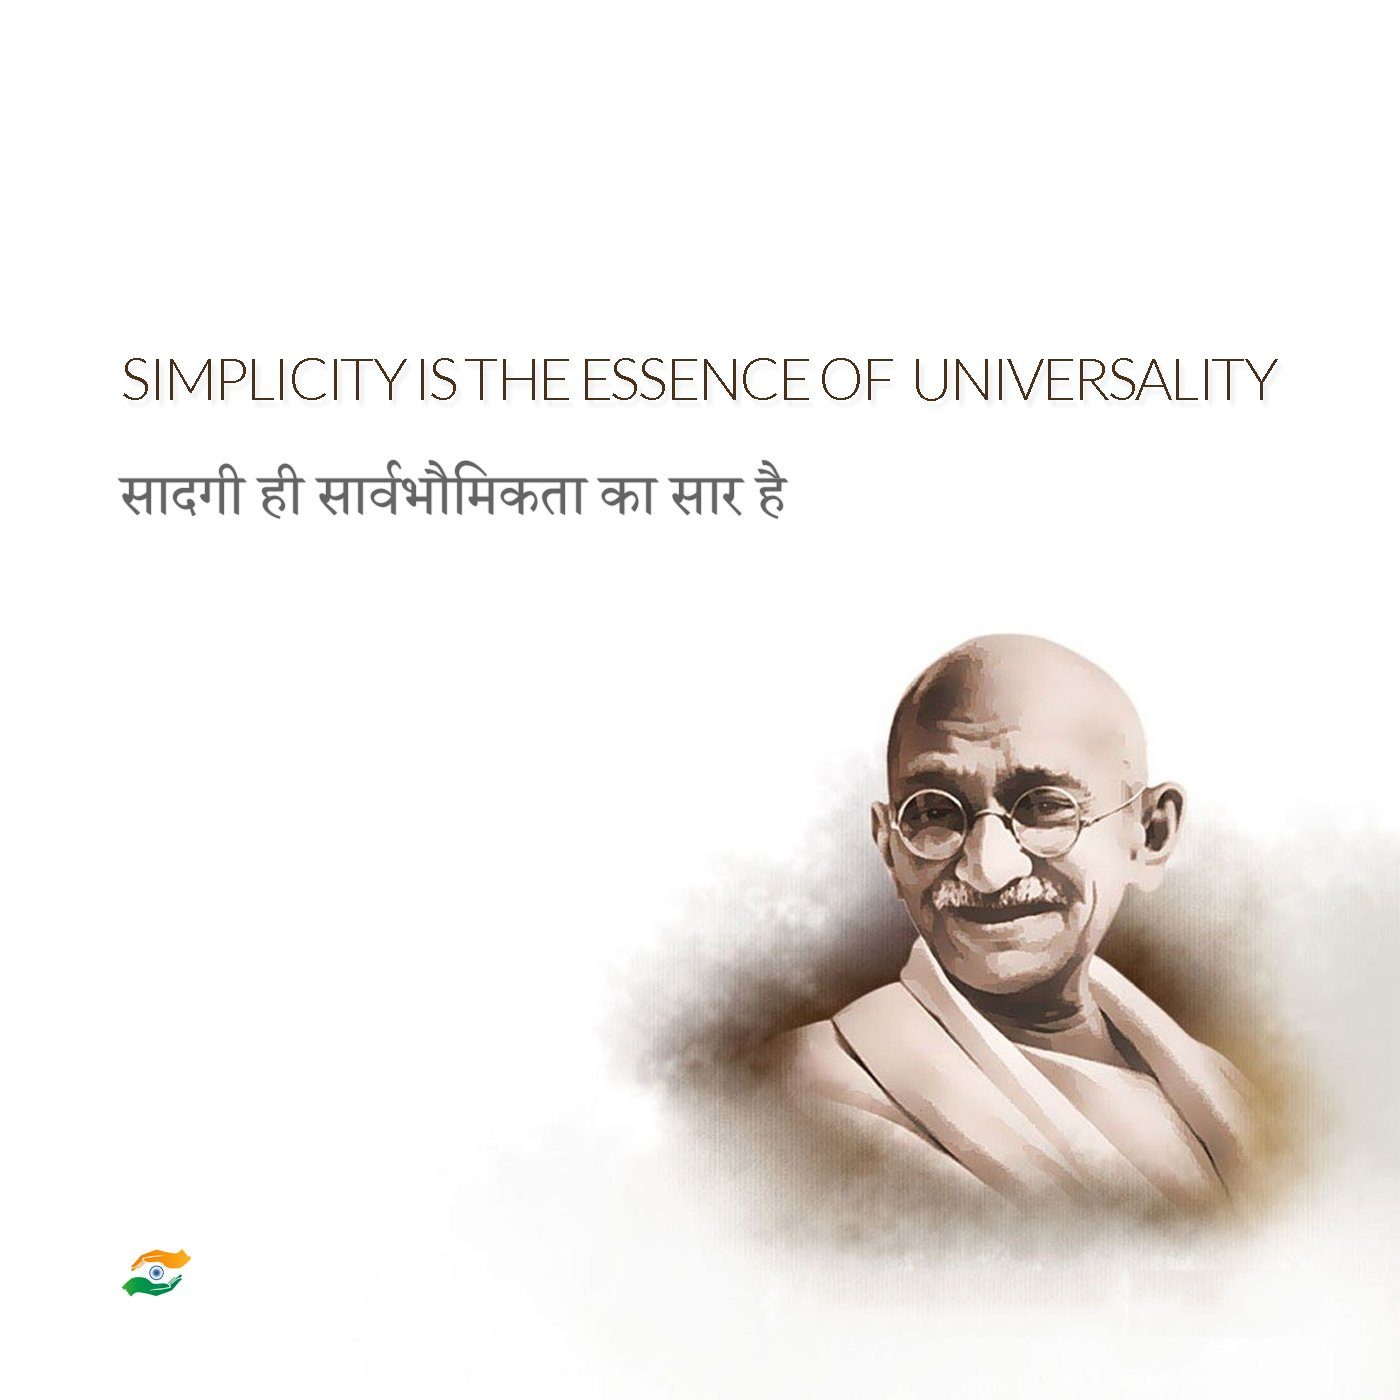 tallenge mahatma gandhi quotes in hindi simplicity is the